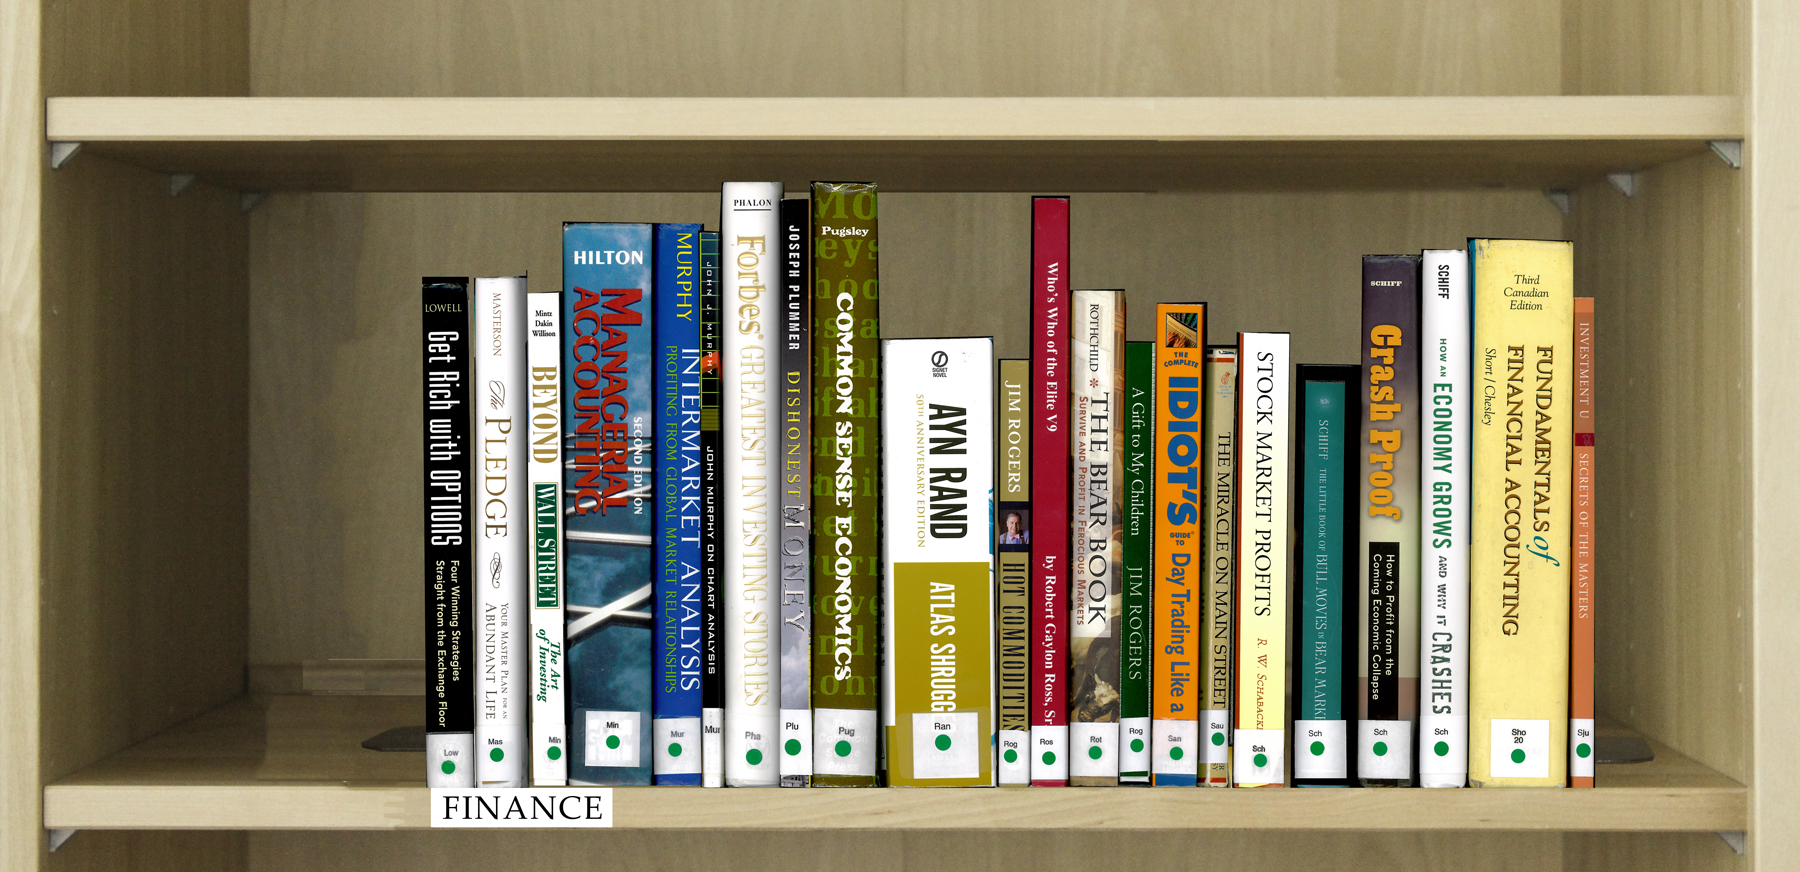 Index of Library Books Under the Category Finance and Accounting